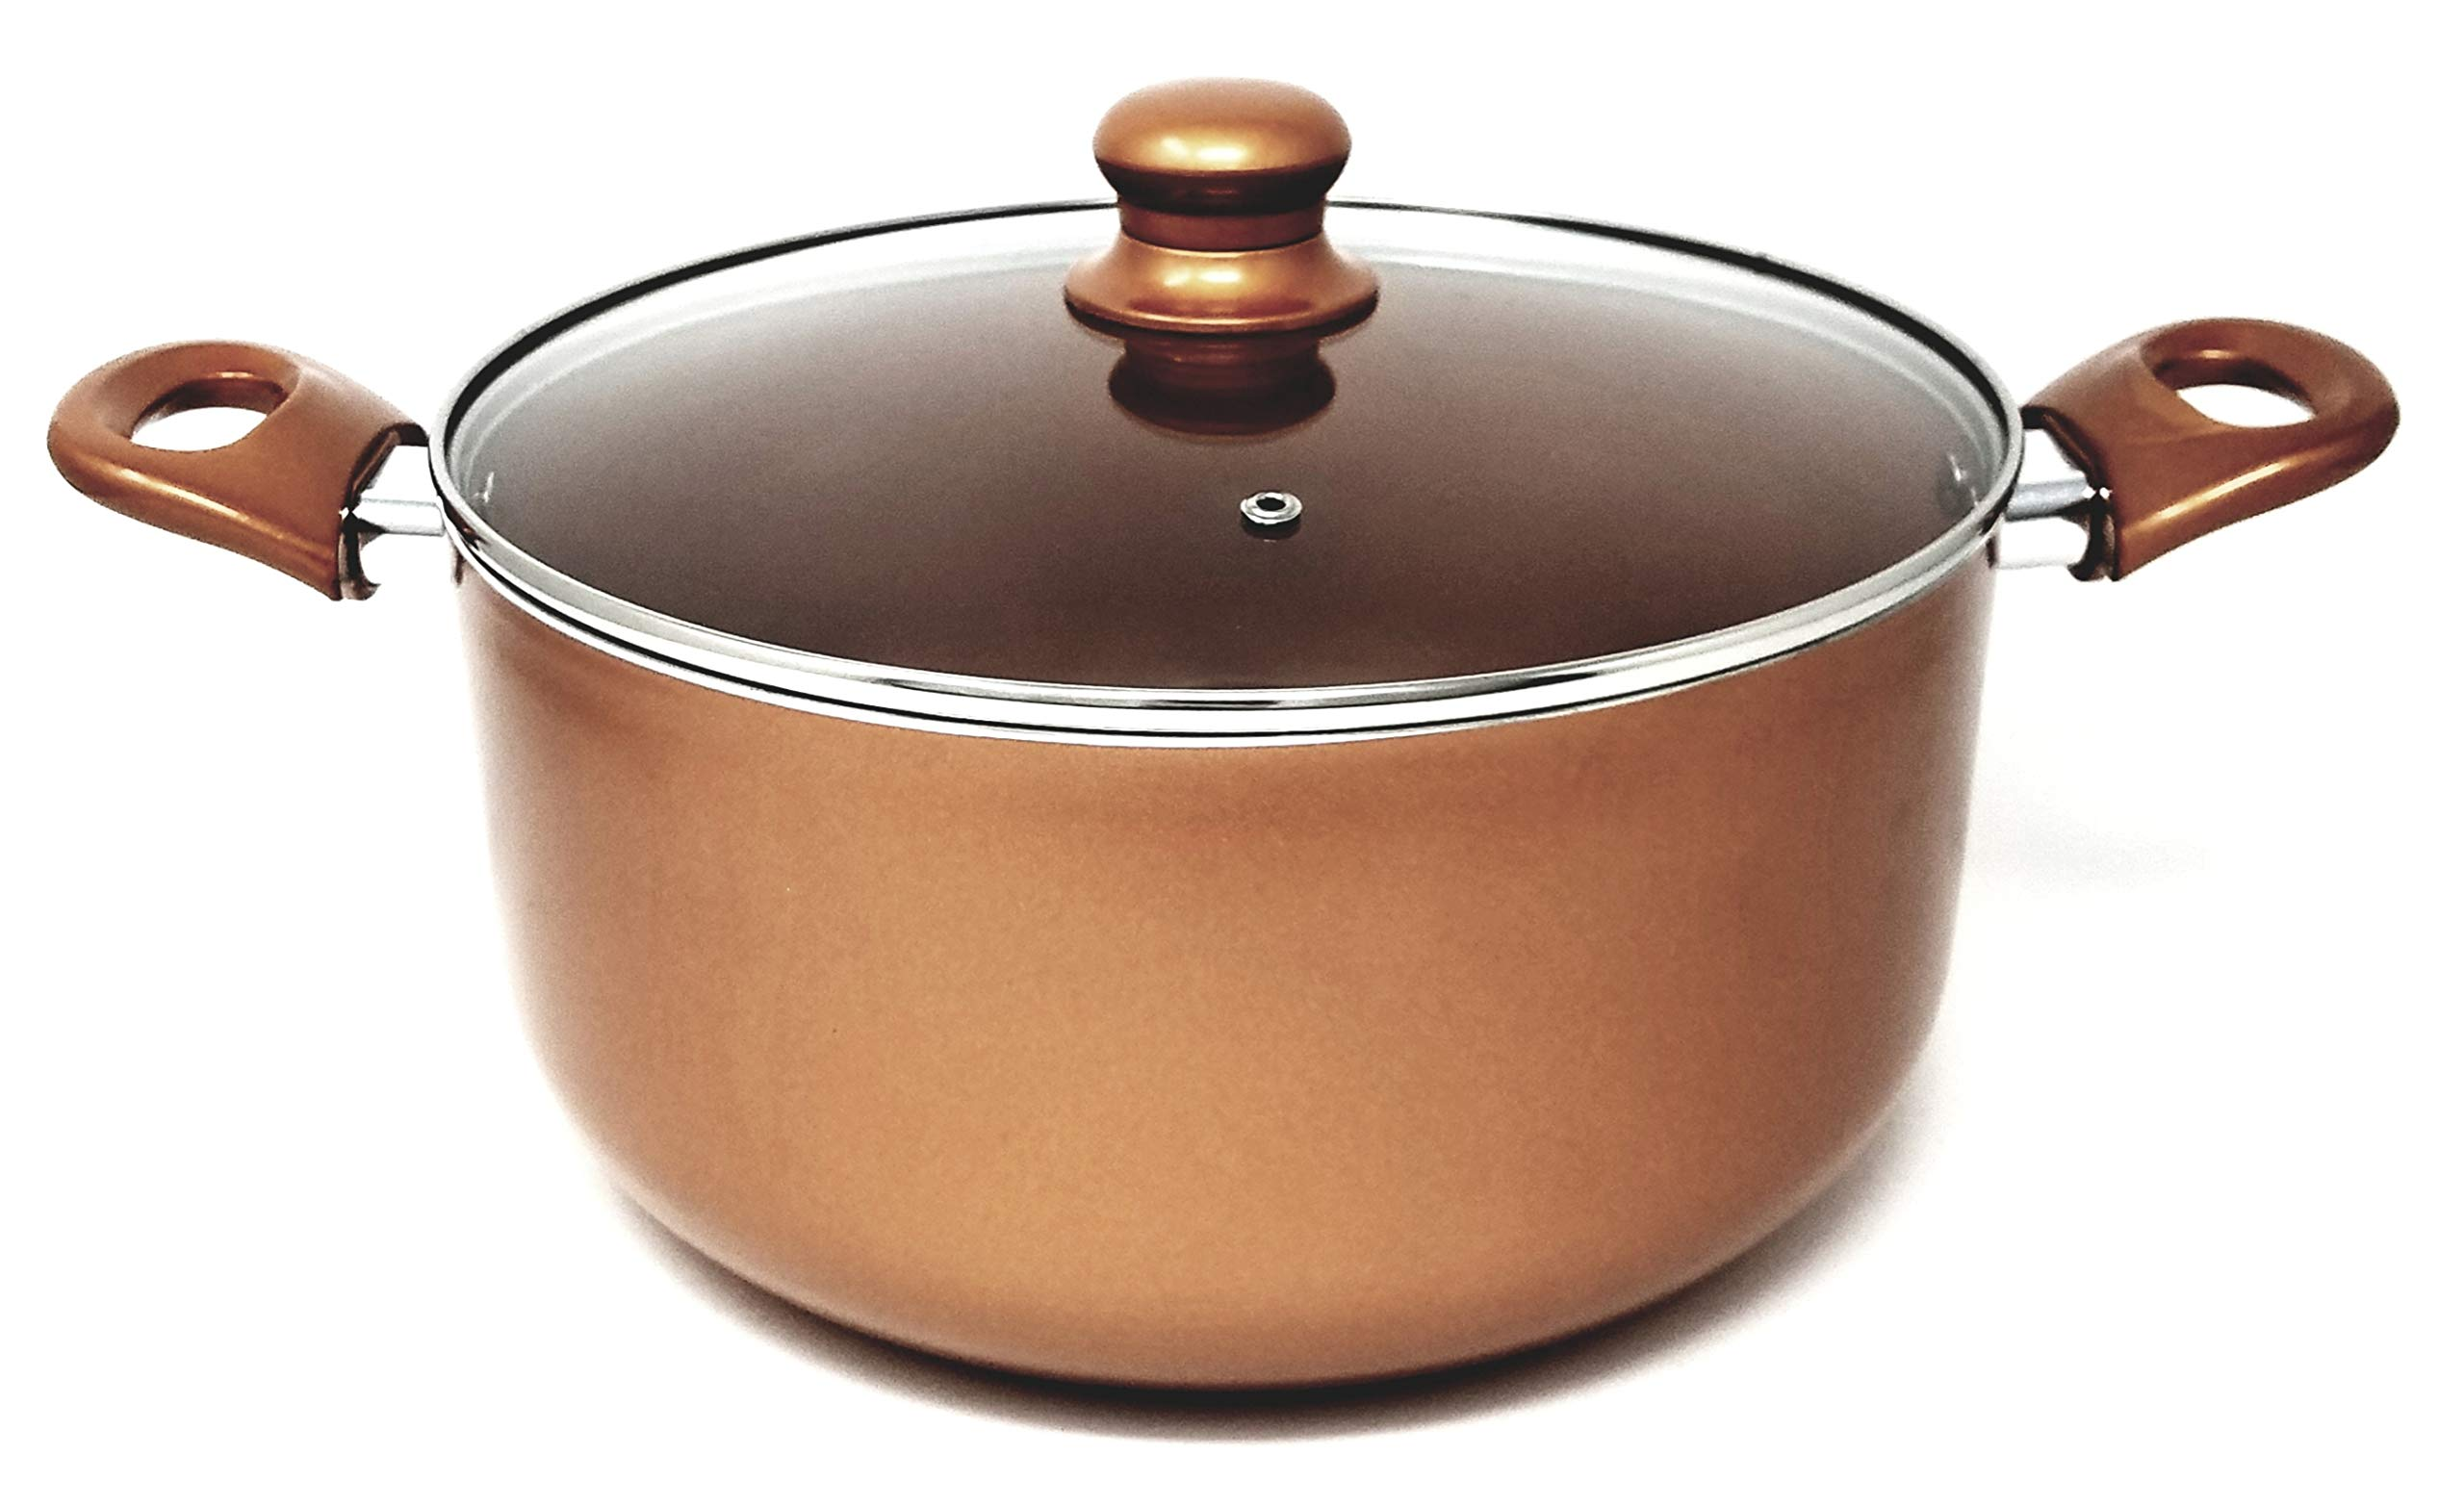 Better Chef, D404, 4-Quart Copper Colored Ceramic Coated Dutch Oven with Tempered Glass Lid